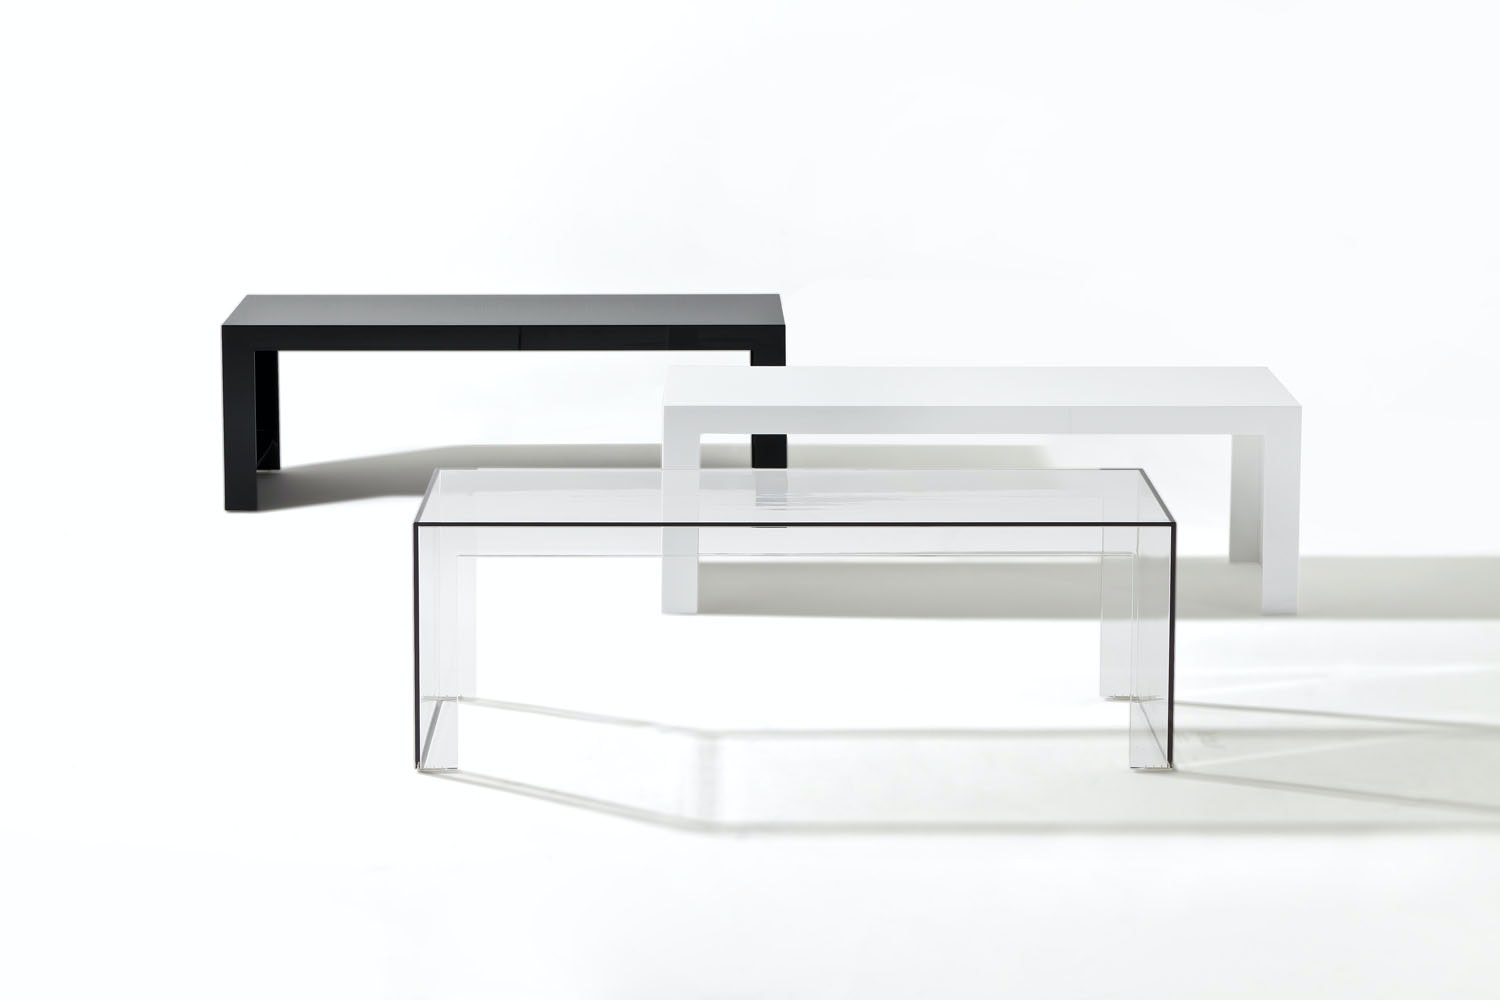 Invisible Side Table Low by Tokujin Yoshioka for Kartell